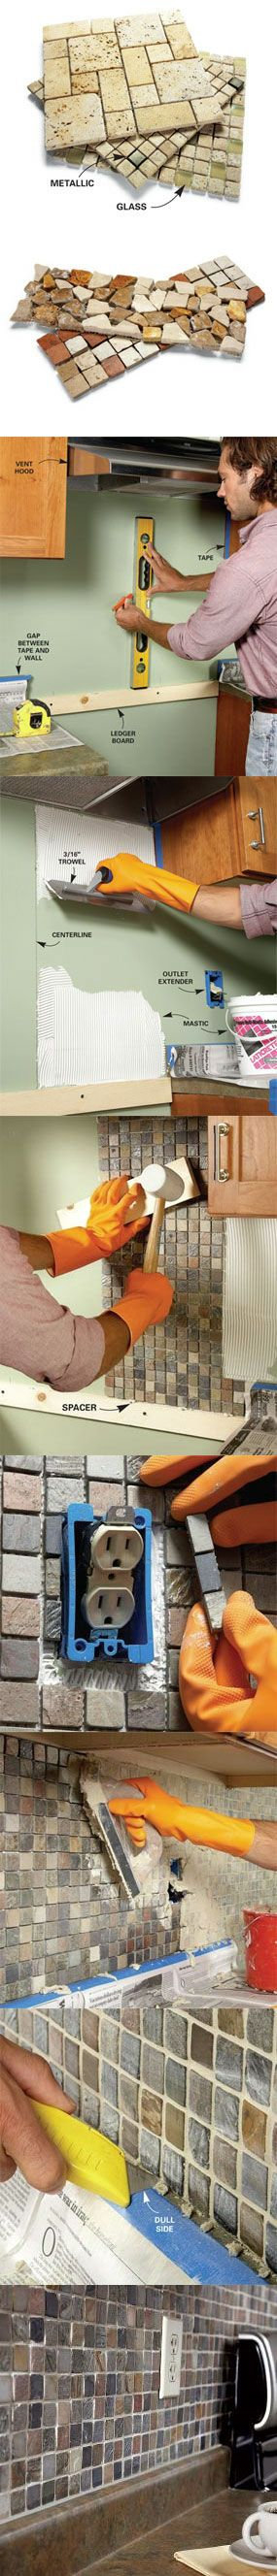 How to install a backsplash!